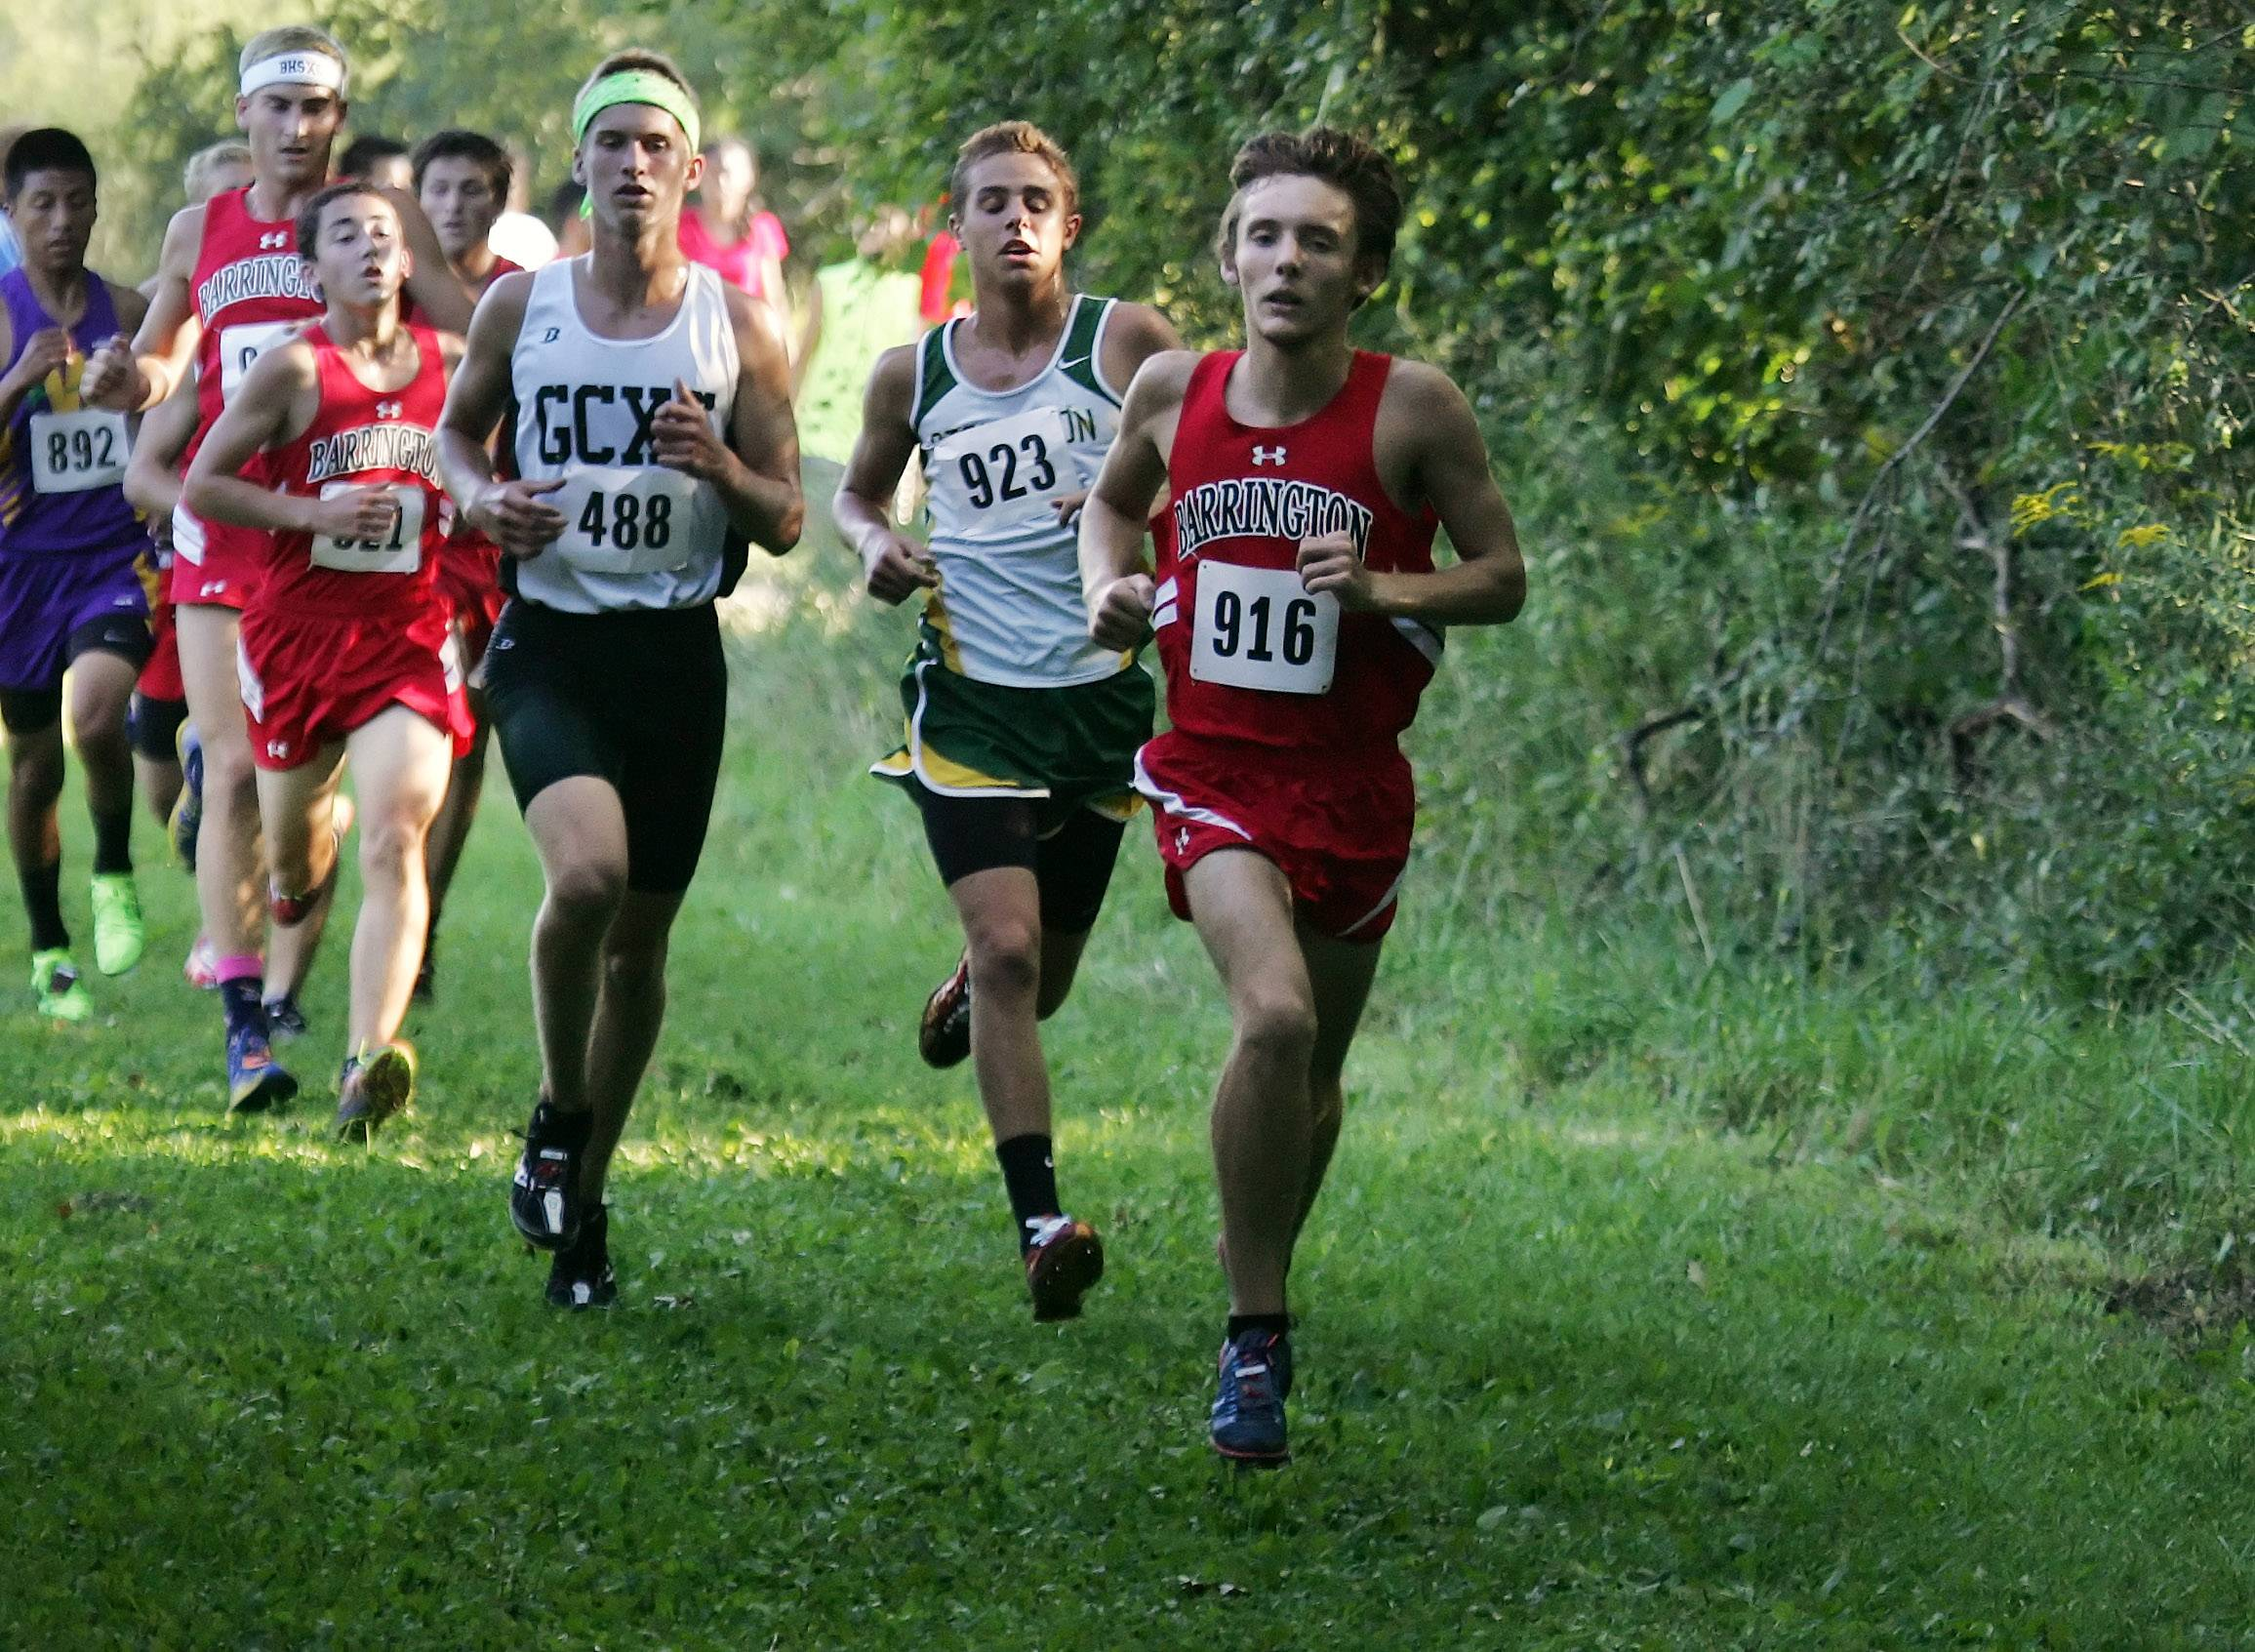 Kyle Monahan leads the Barrington pack during the Lake County/Art Campbell Invitational on Wednesday at Lakewood Forest Preserve near Wauconda.